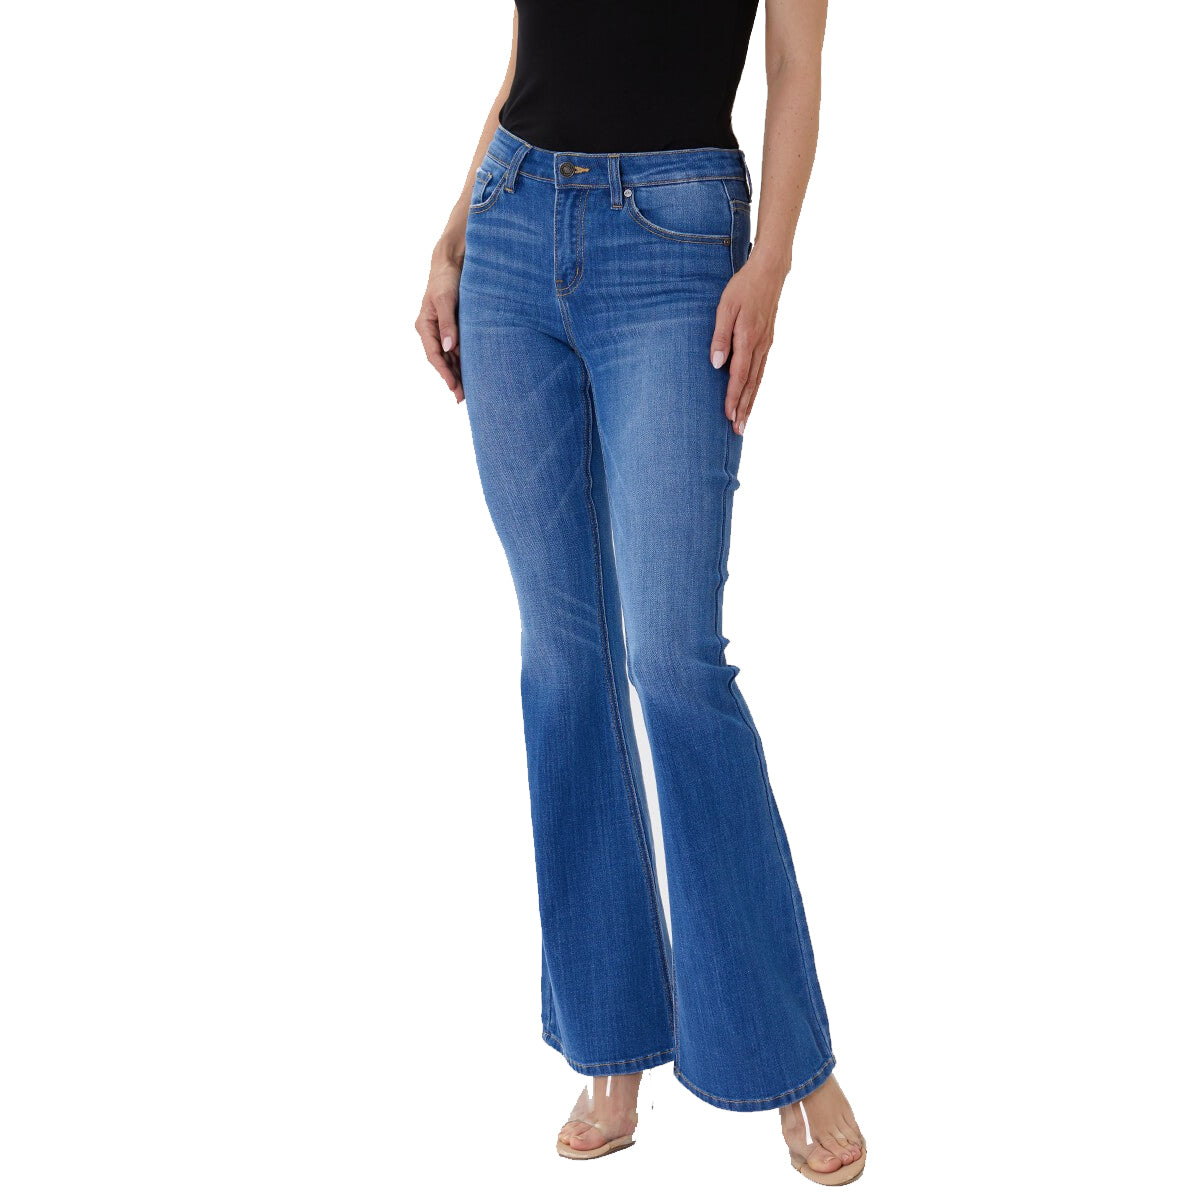 Kan Can Women's Mid Rise Flare Jeans - Medium Wash